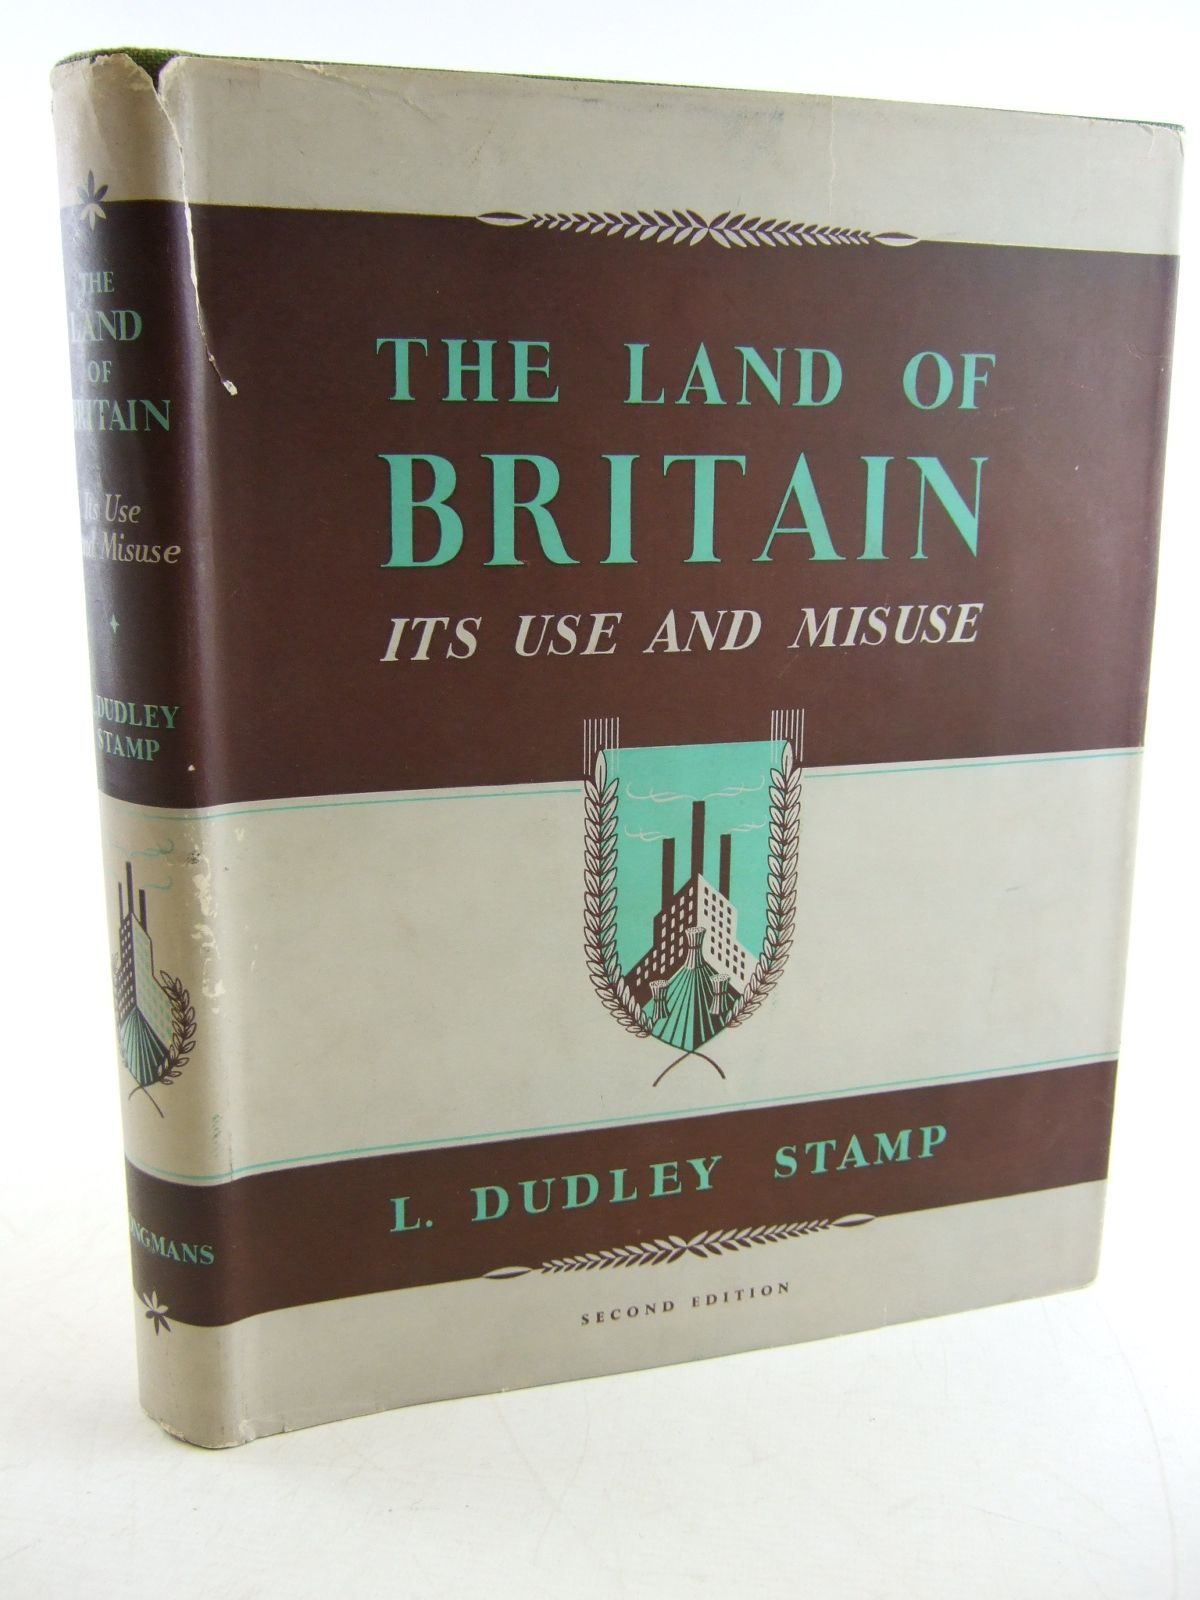 Photo of THE LAND OF BRITAIN ITS USE AND MISUSE written by Stamp, L. Dudley published by Longmans, Green and Co. Ltd. (STOCK CODE: 1806213)  for sale by Stella & Rose's Books